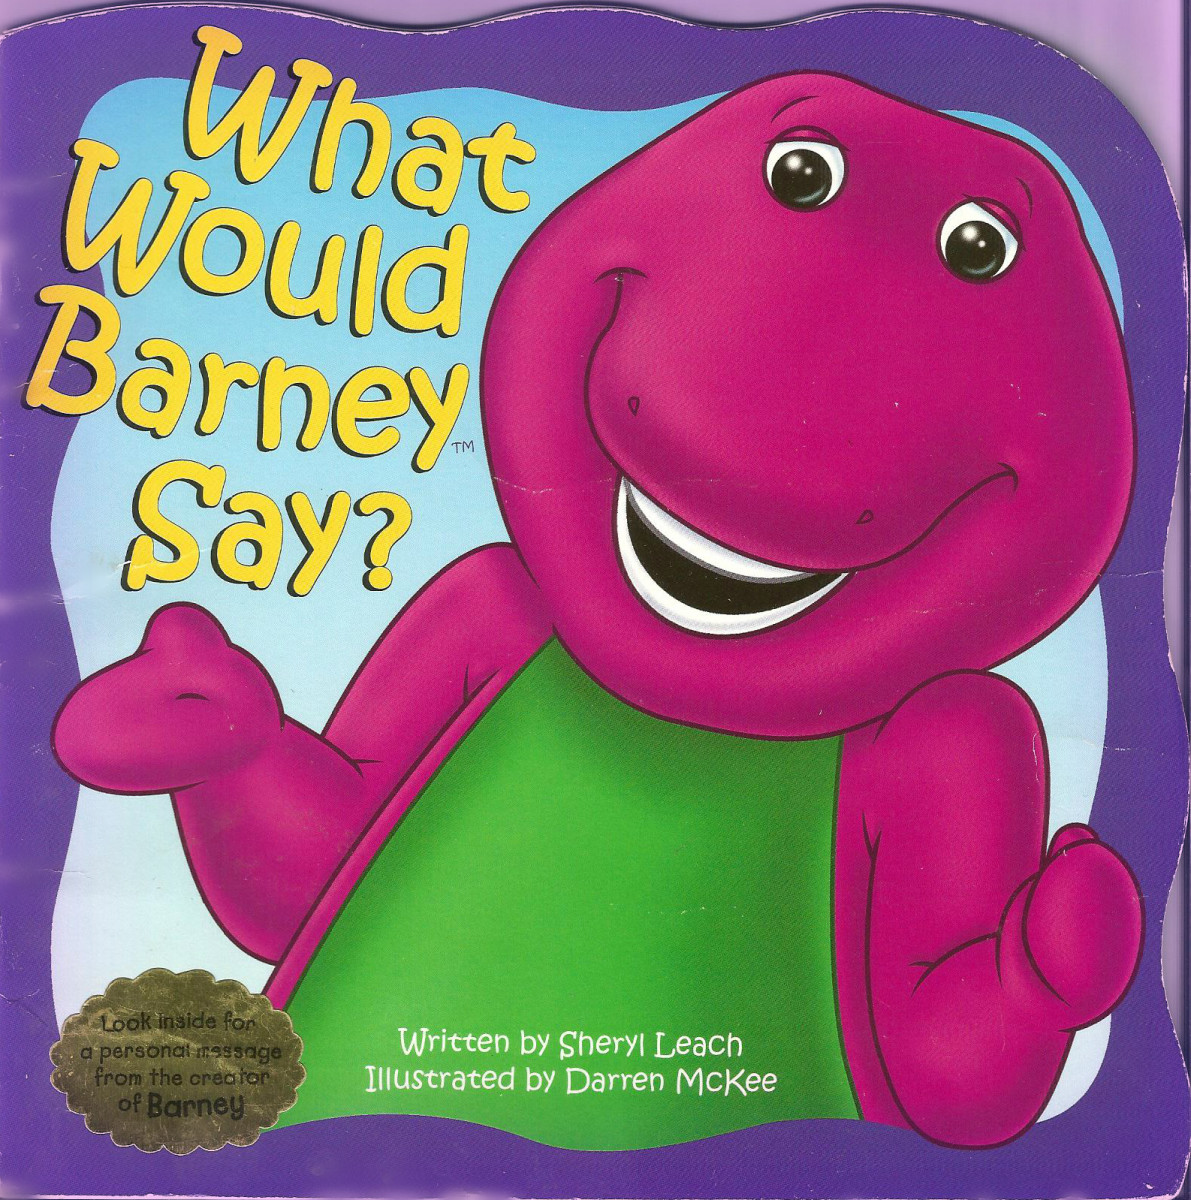 This sweet picture book was written by Sheryl Leach and illustrated by Darren McKee. Sheryl was the  creator and  executive producer of Barney and Barney Publishing.